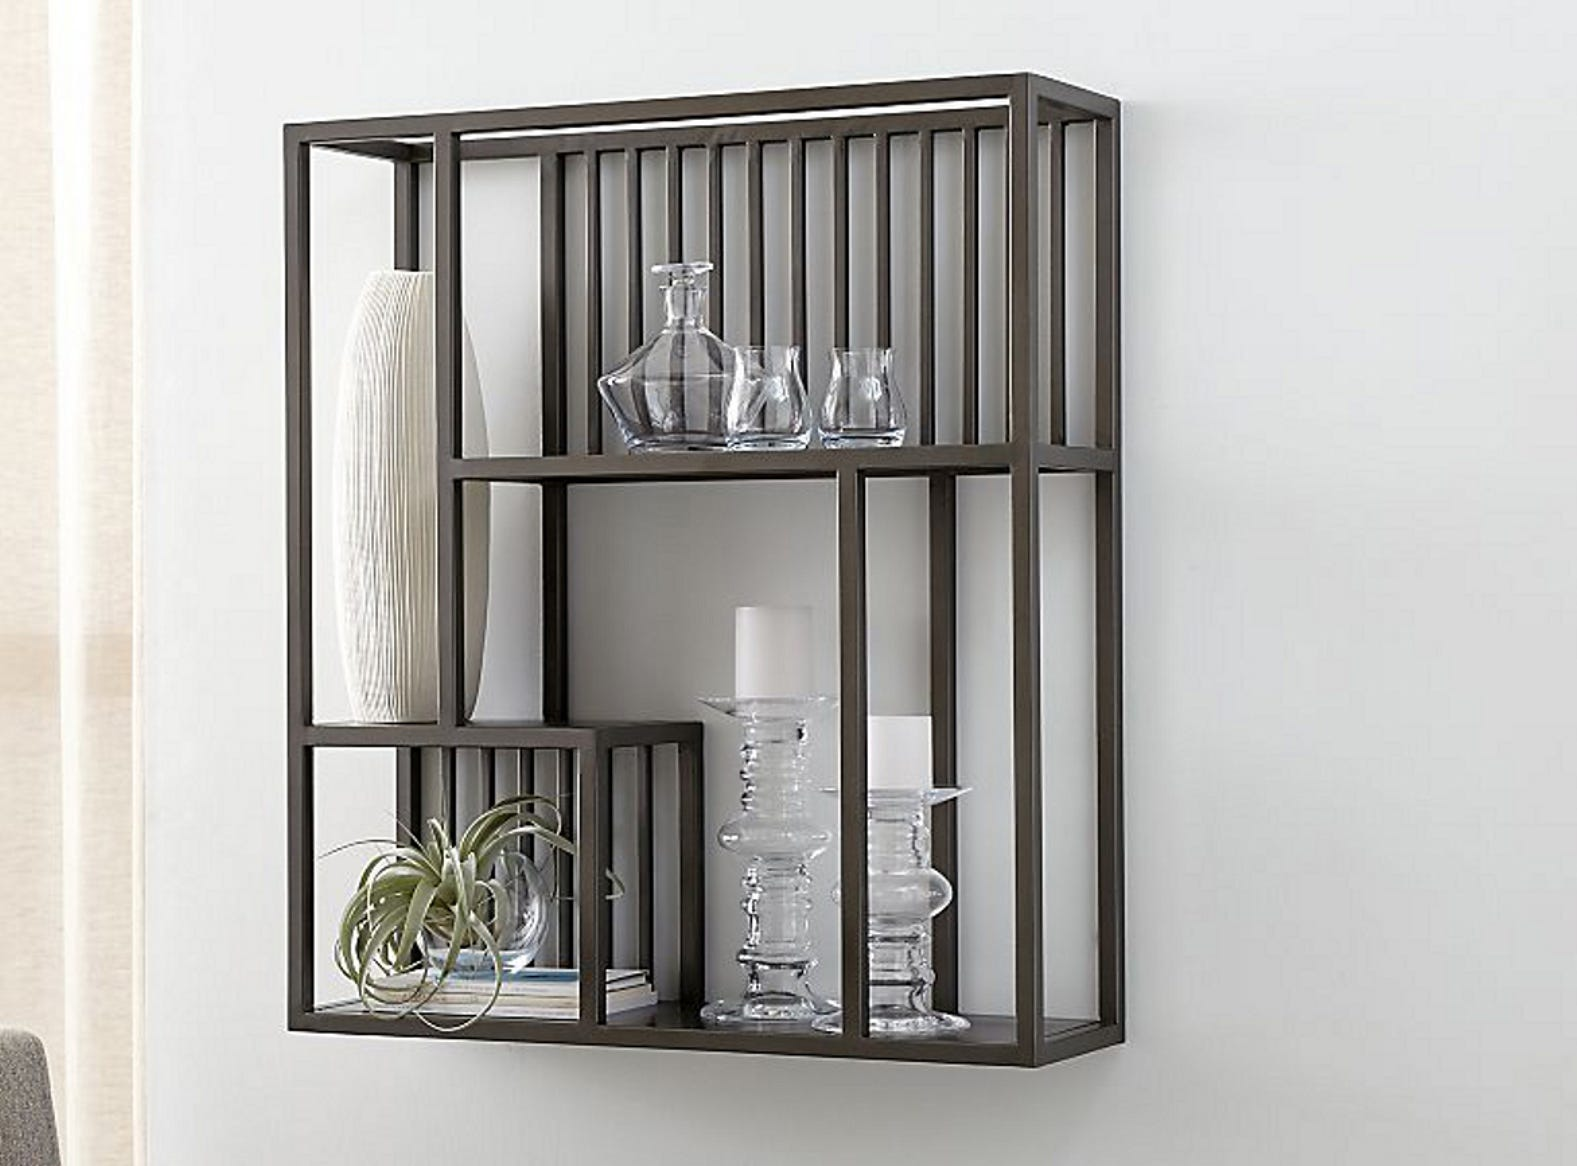 A robust linear design, the Lottie wall shelf is crafted from iron with a gunmetal finish and clear lacquer topcoat. Caged detailing and asymmetry lend style with the offset arrangement and three open shelves at varying heights.